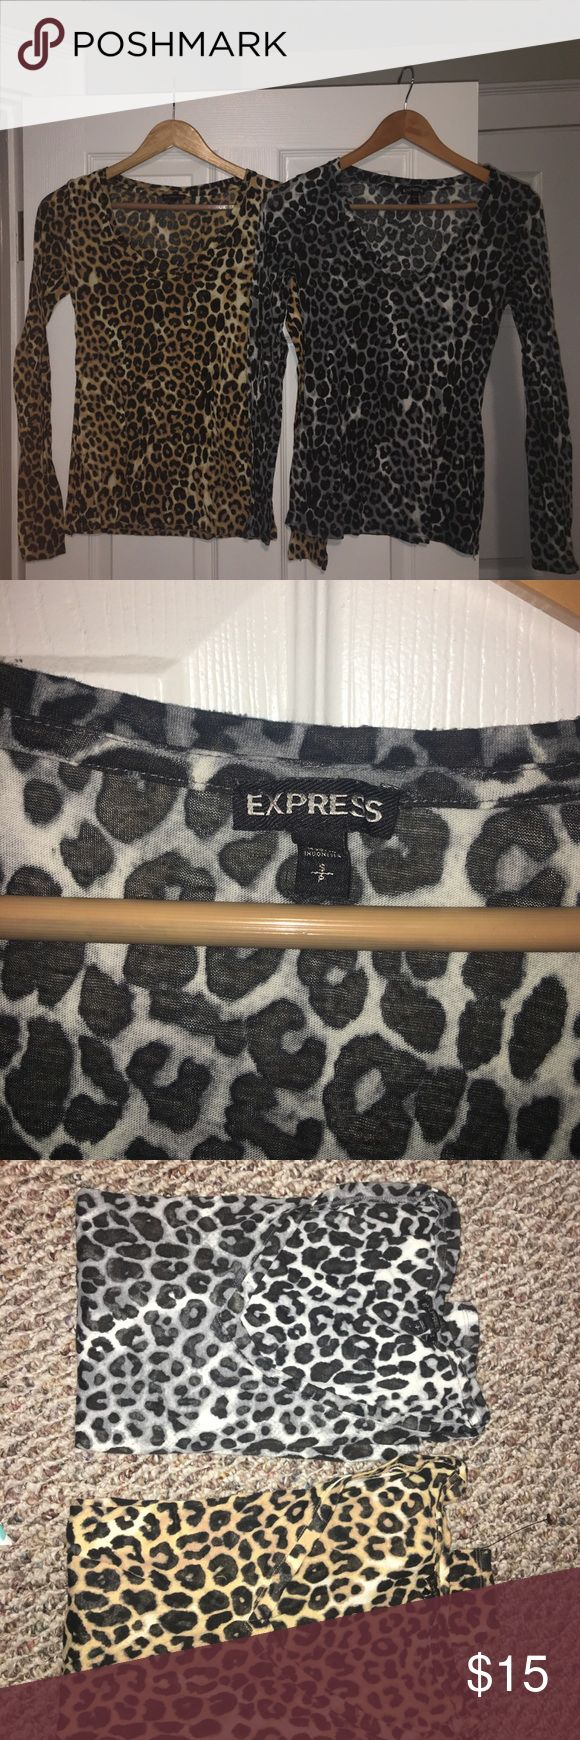 Leopard Print V-Neck Shirts Two V-Neck Leopard Print shirts from Express Express Tops Tees - Long Sleeve